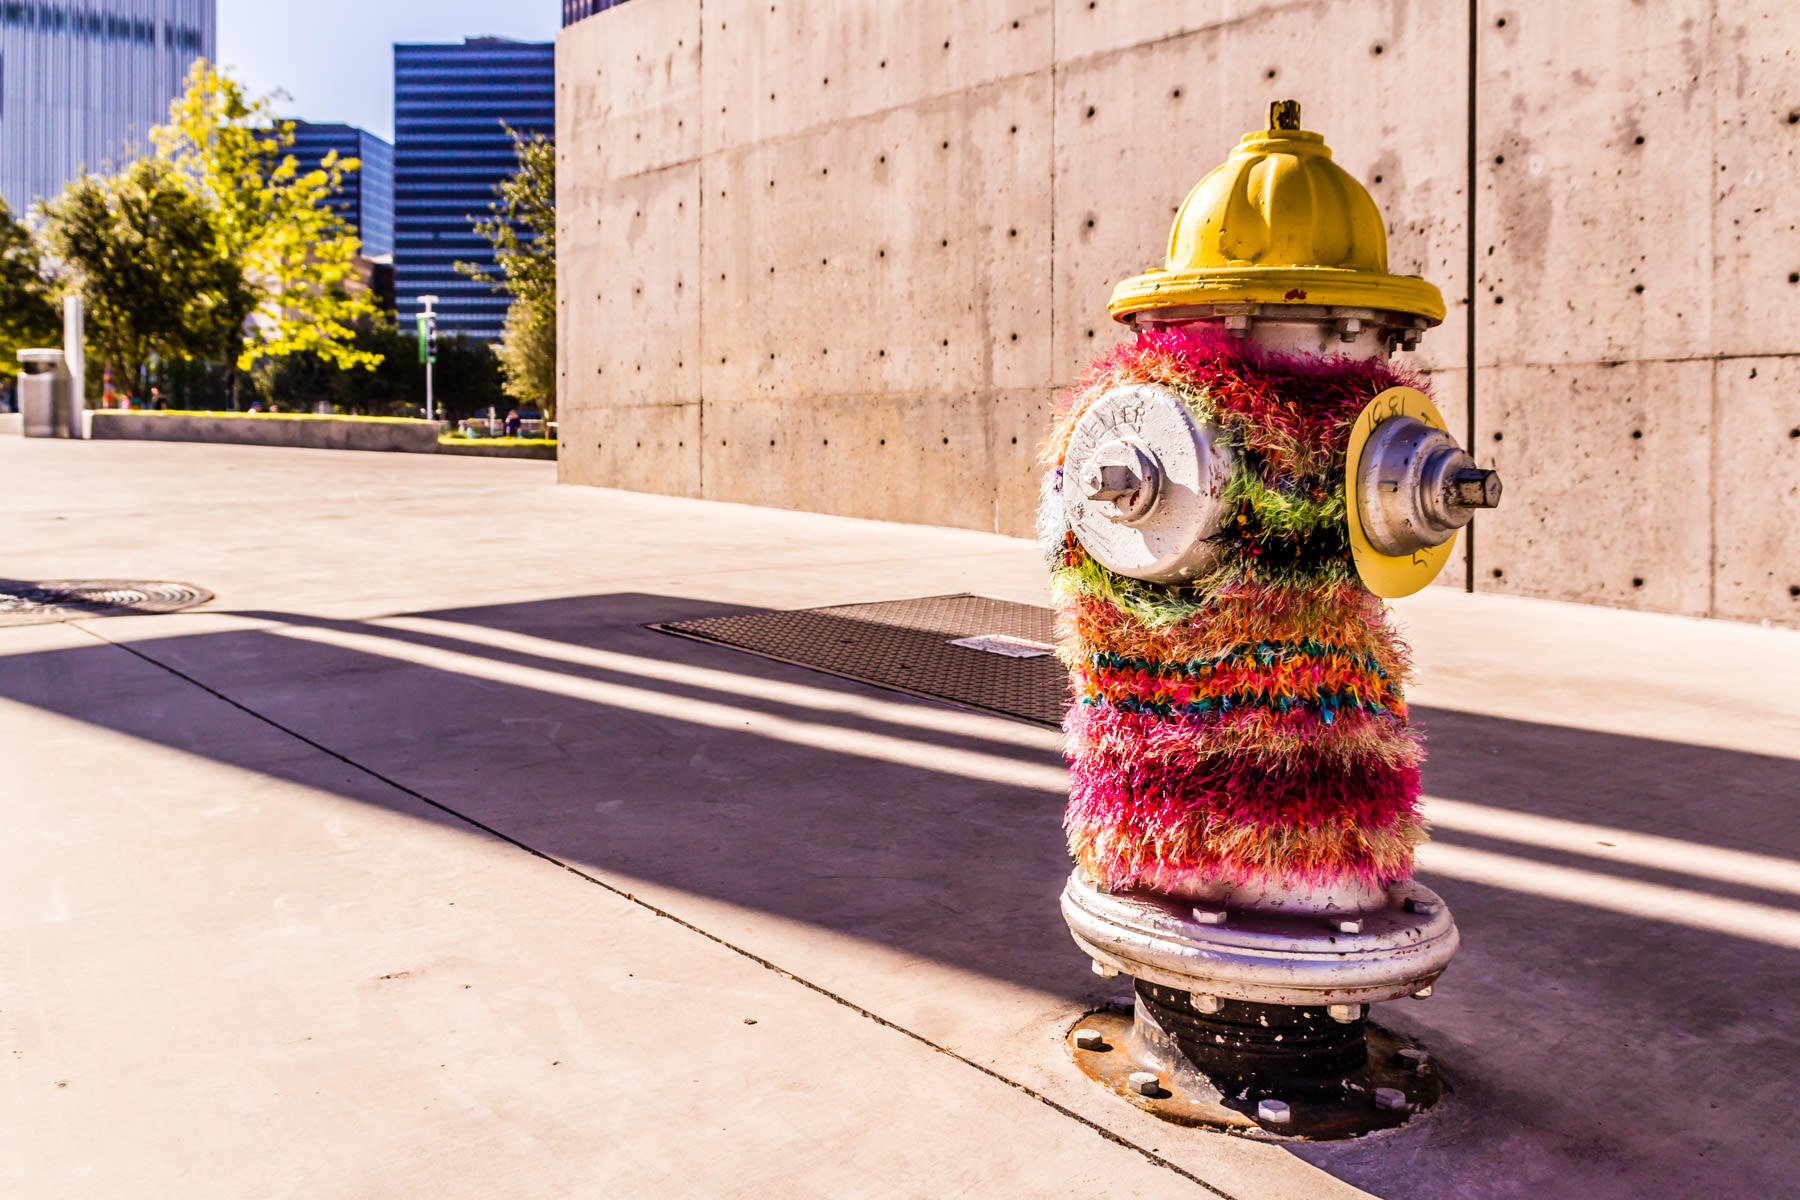 A yarn-bombed fire hydrant in the Dallas Arts District.